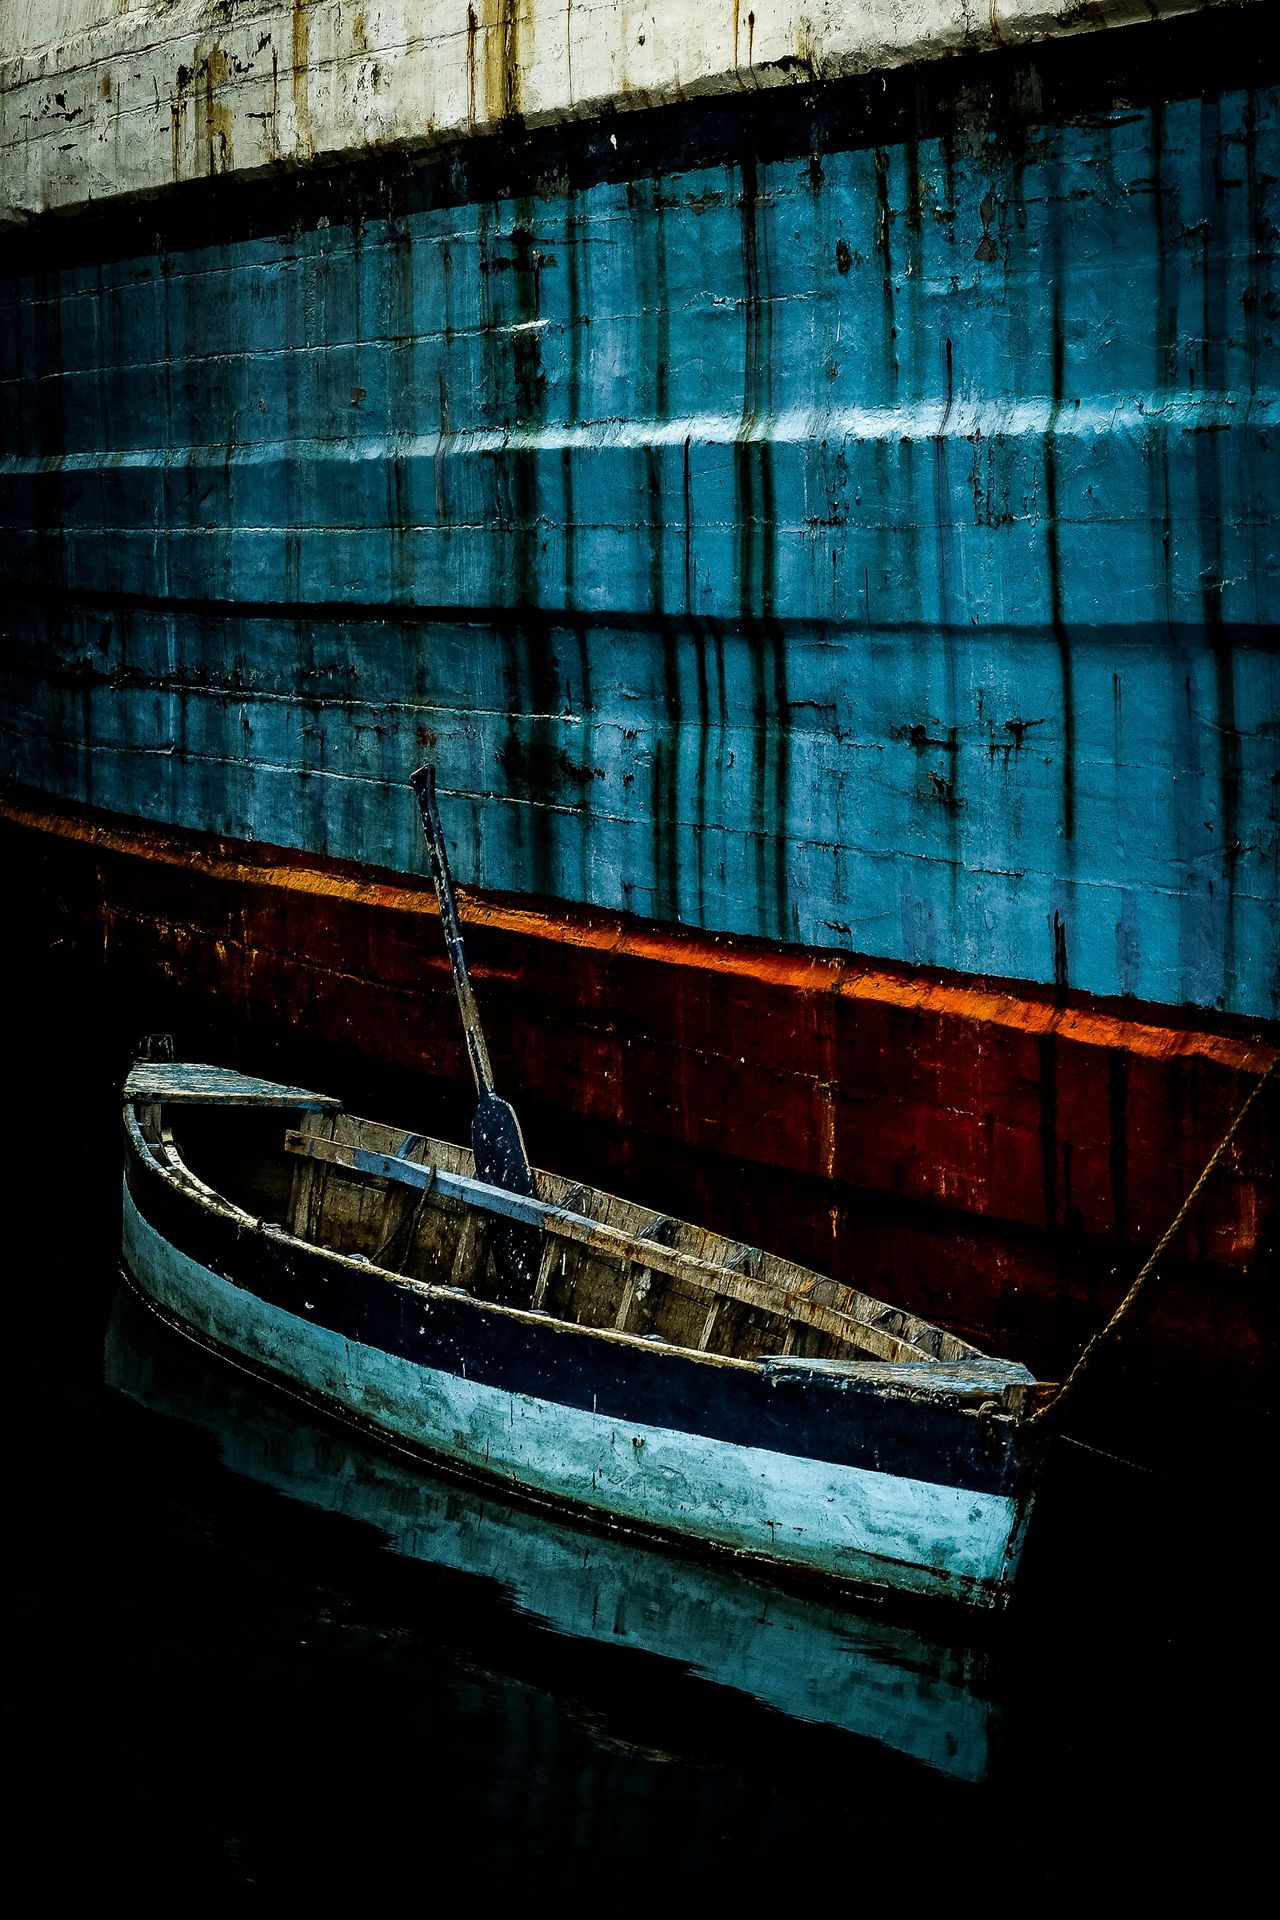 Nautical Vessel Window Transportation Day No People Mode Of Transport Outdoors Close-up Water Boat Artistic